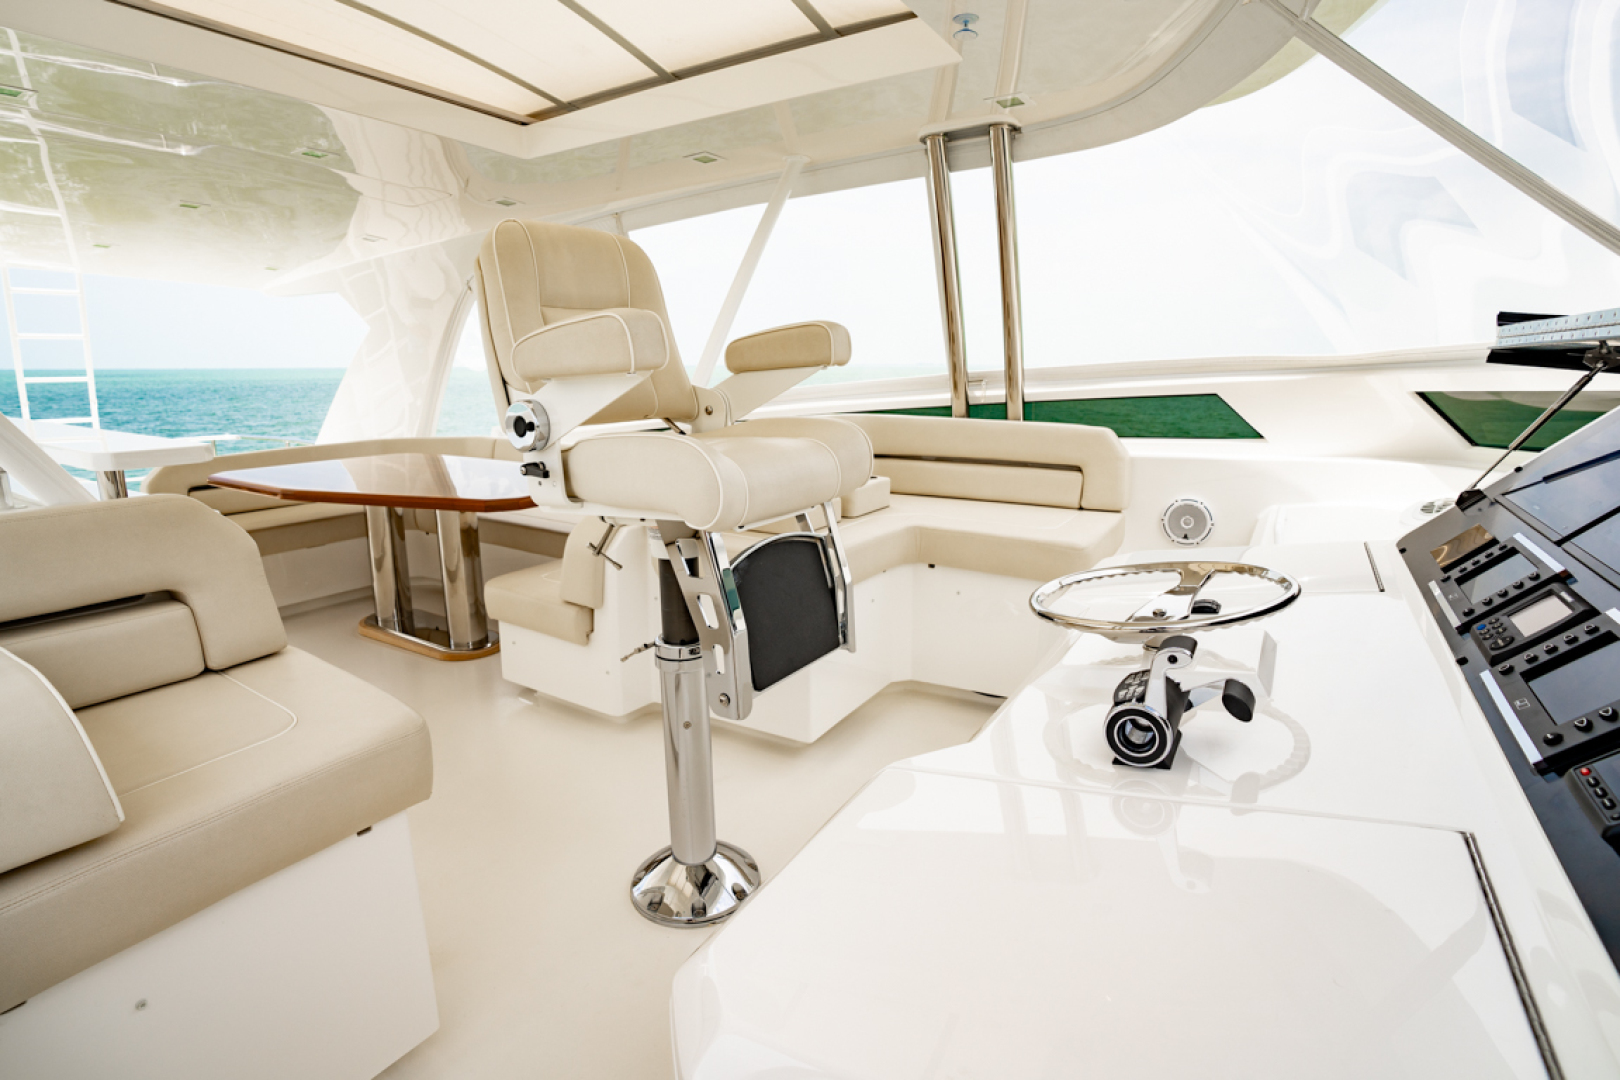 Viking-82 Cockpit MY 2019-Make It Happen Sanibel -Florida-United States-Viking 82CPMY Make It Happen Captains Chair-1378558 | Thumbnail